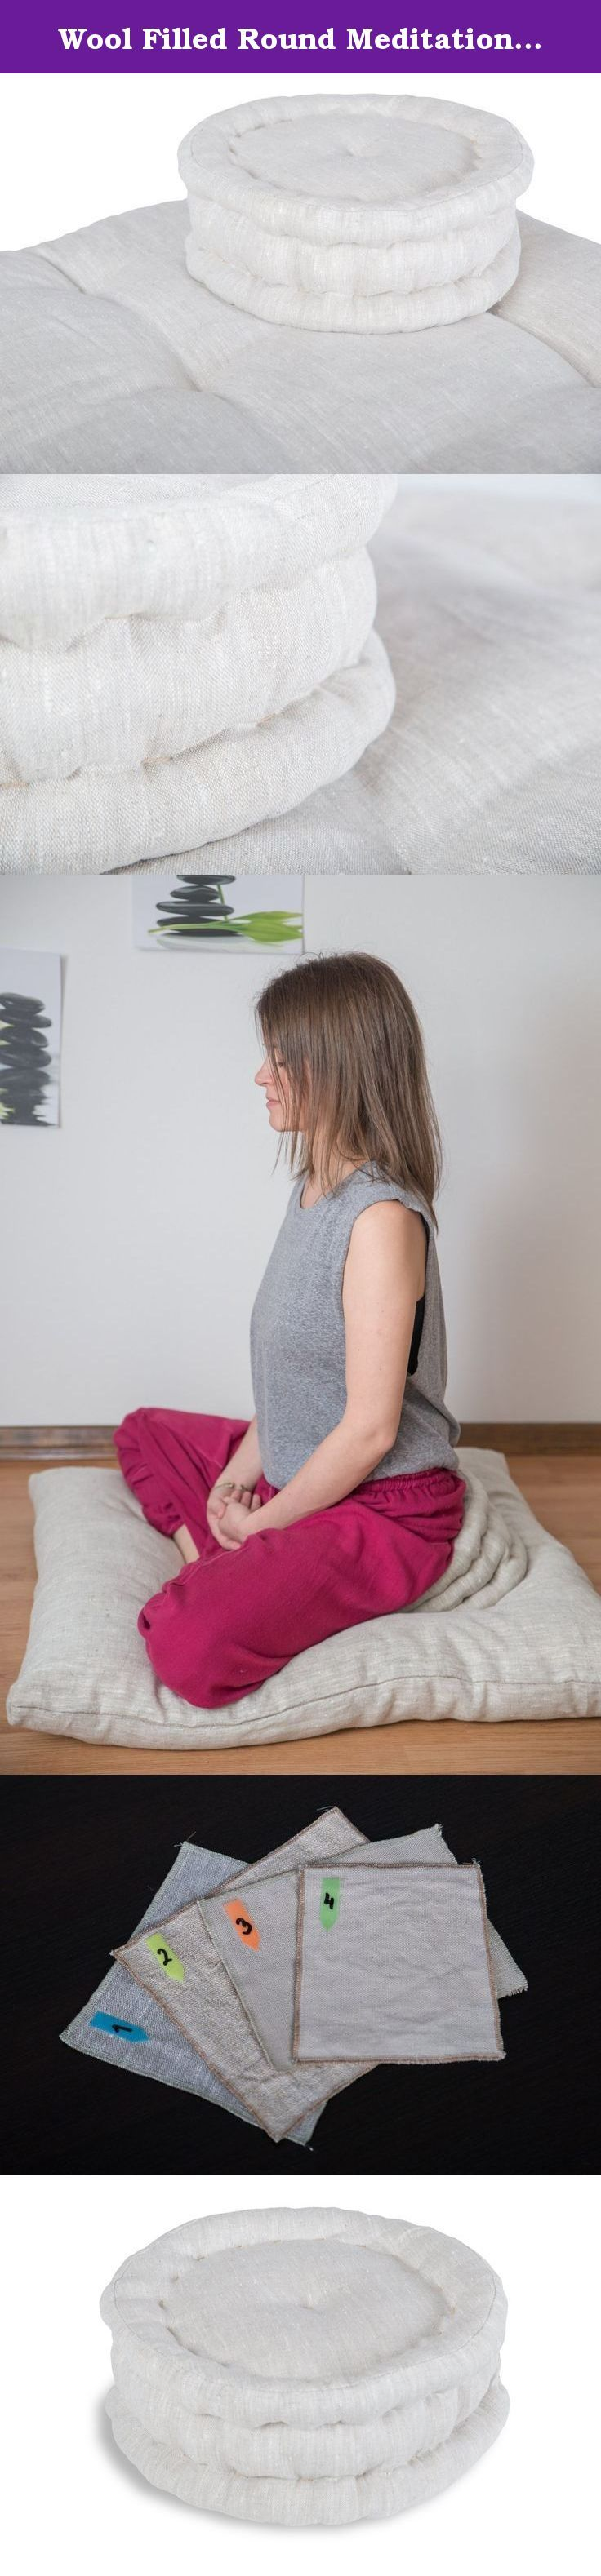 Wool Filled Round Meditation Cushion, Floor Cushion, Floor Pillow, Meditation Pillow, Meditation supplies. WE OFFER CUSTOM SIZES FOR MEDITATION CUSHION! Meditation is one of the best and useful ways for blocking out all the negative influences of the external world, and y time to dedicate for ourselves. Positive effects of natural materials help with deeper meditation so that your mind calms down and fills with fresh energy. With its design and padding provides mindful meditation. It can…